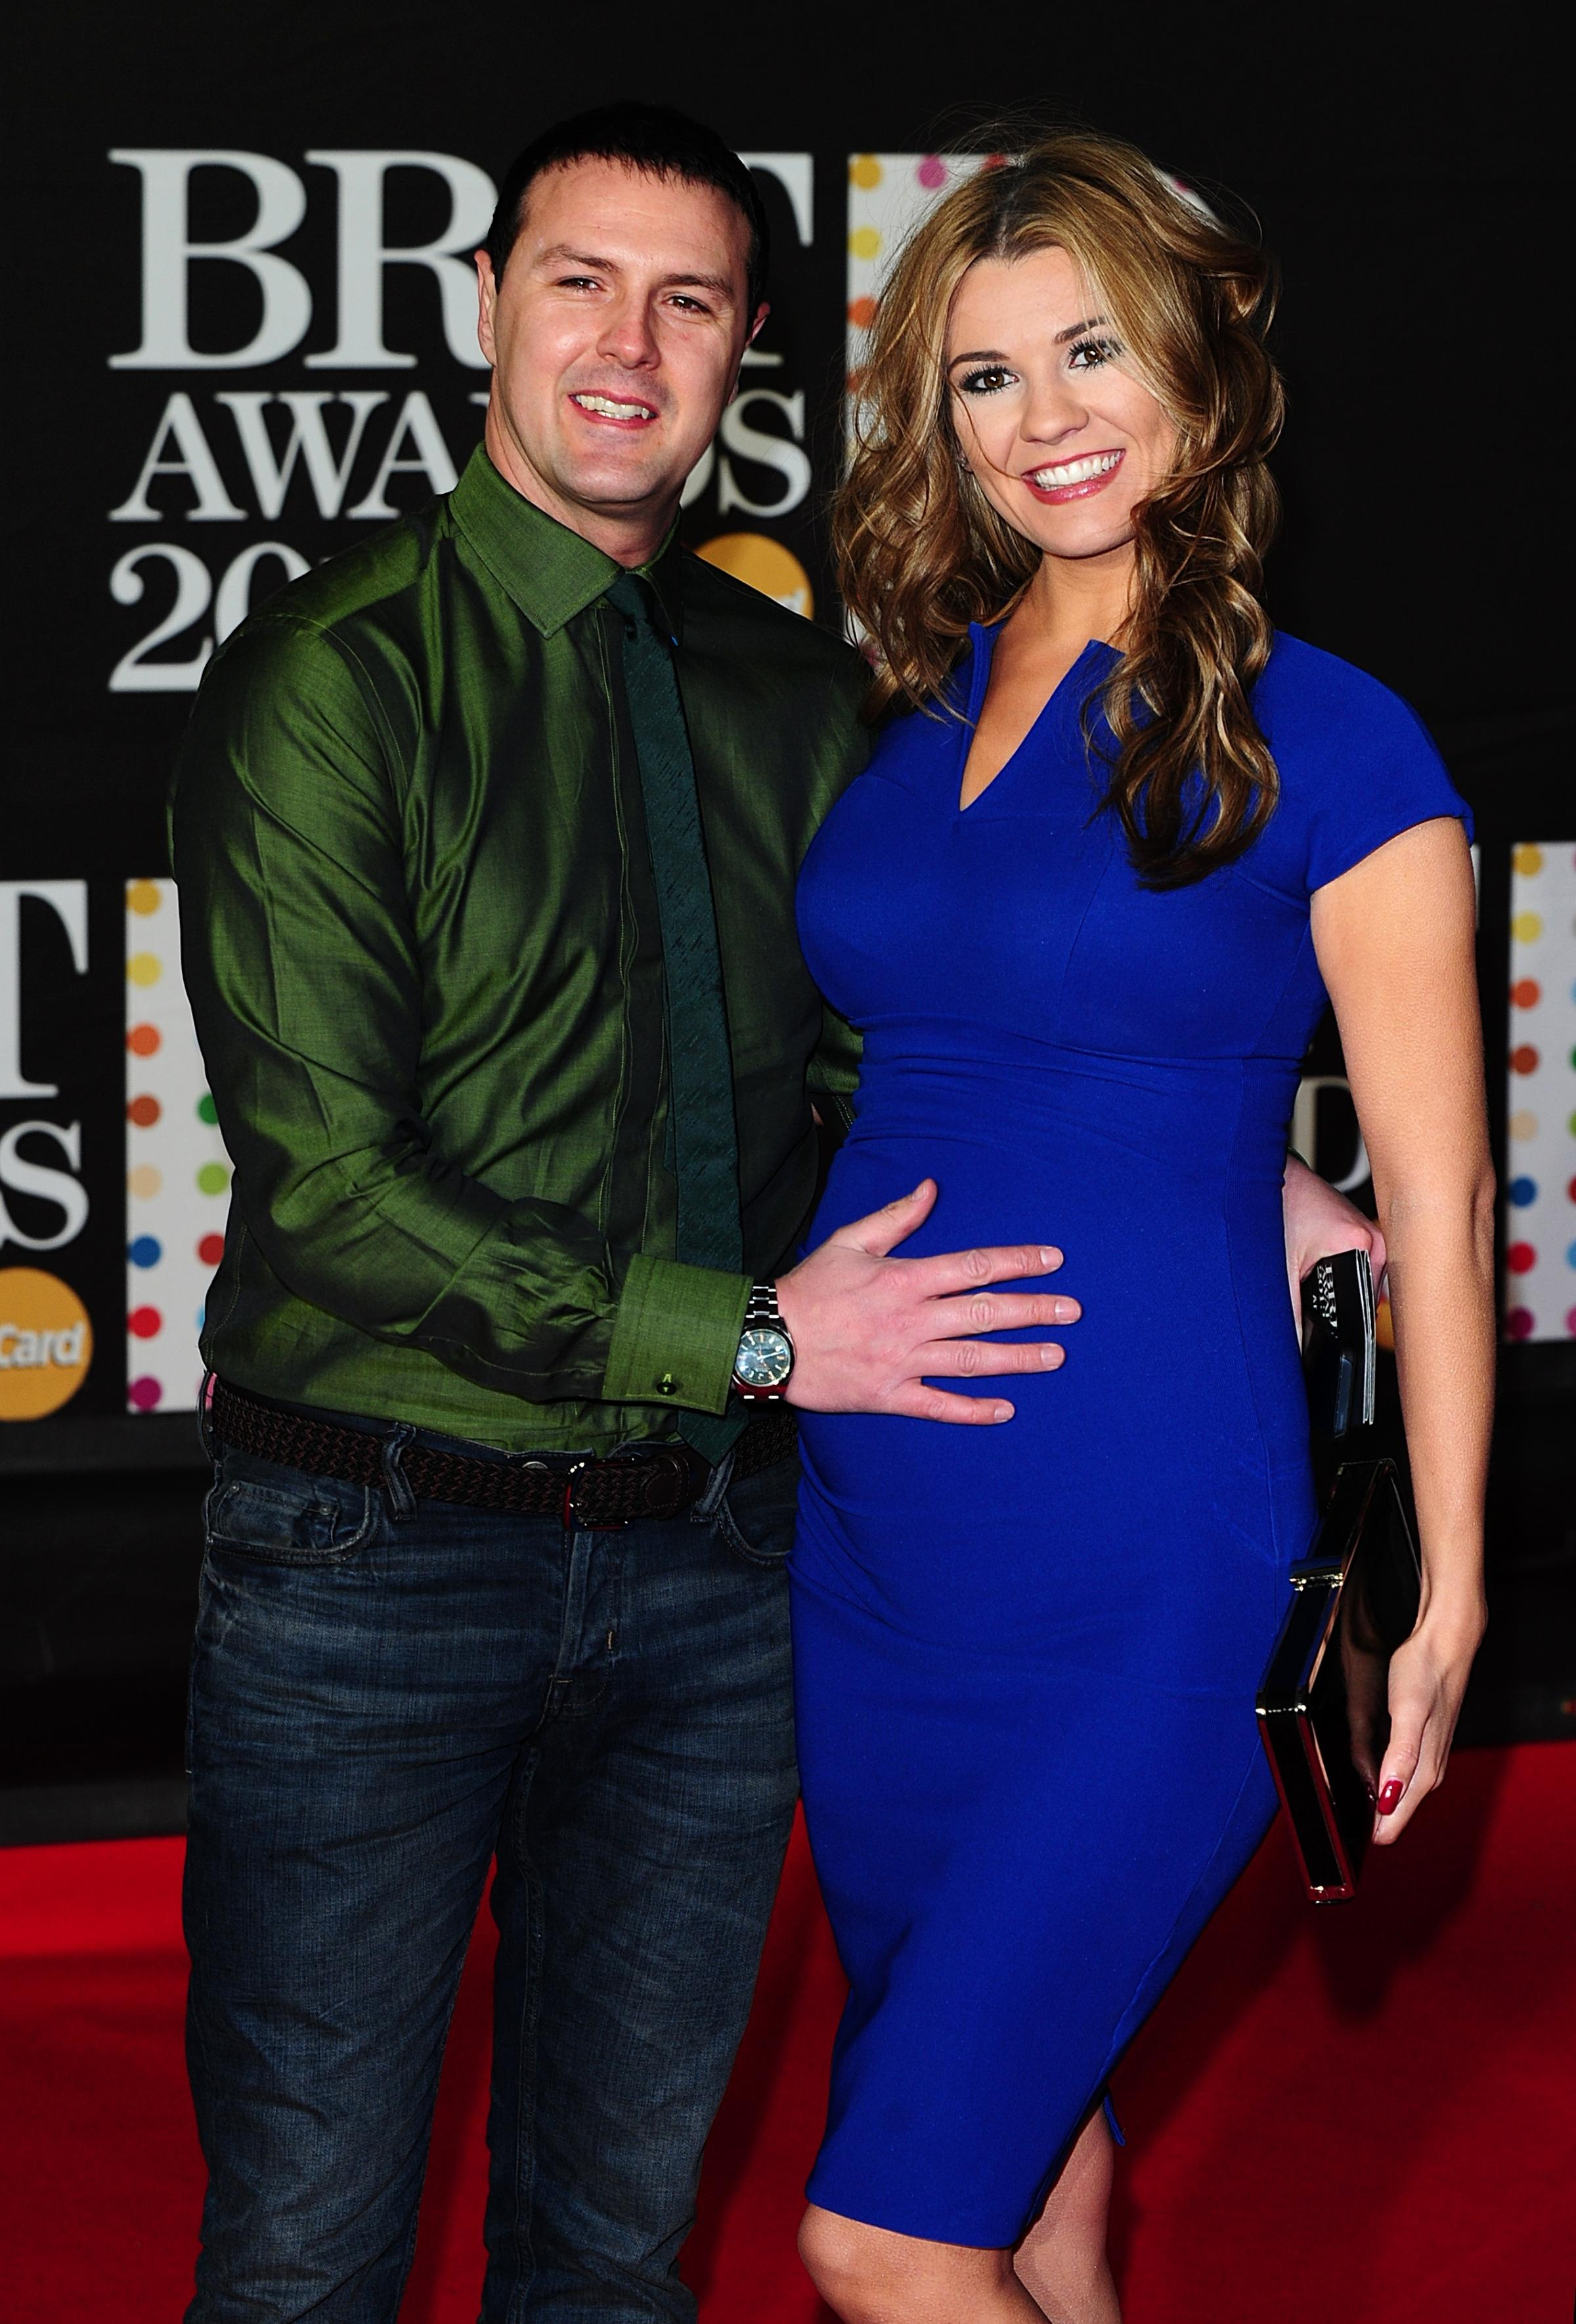 Patrick 'Paddy' McGuinness and wife Christine Martin arriving for the 2013 Brit Awards at the O2 Arena, London..